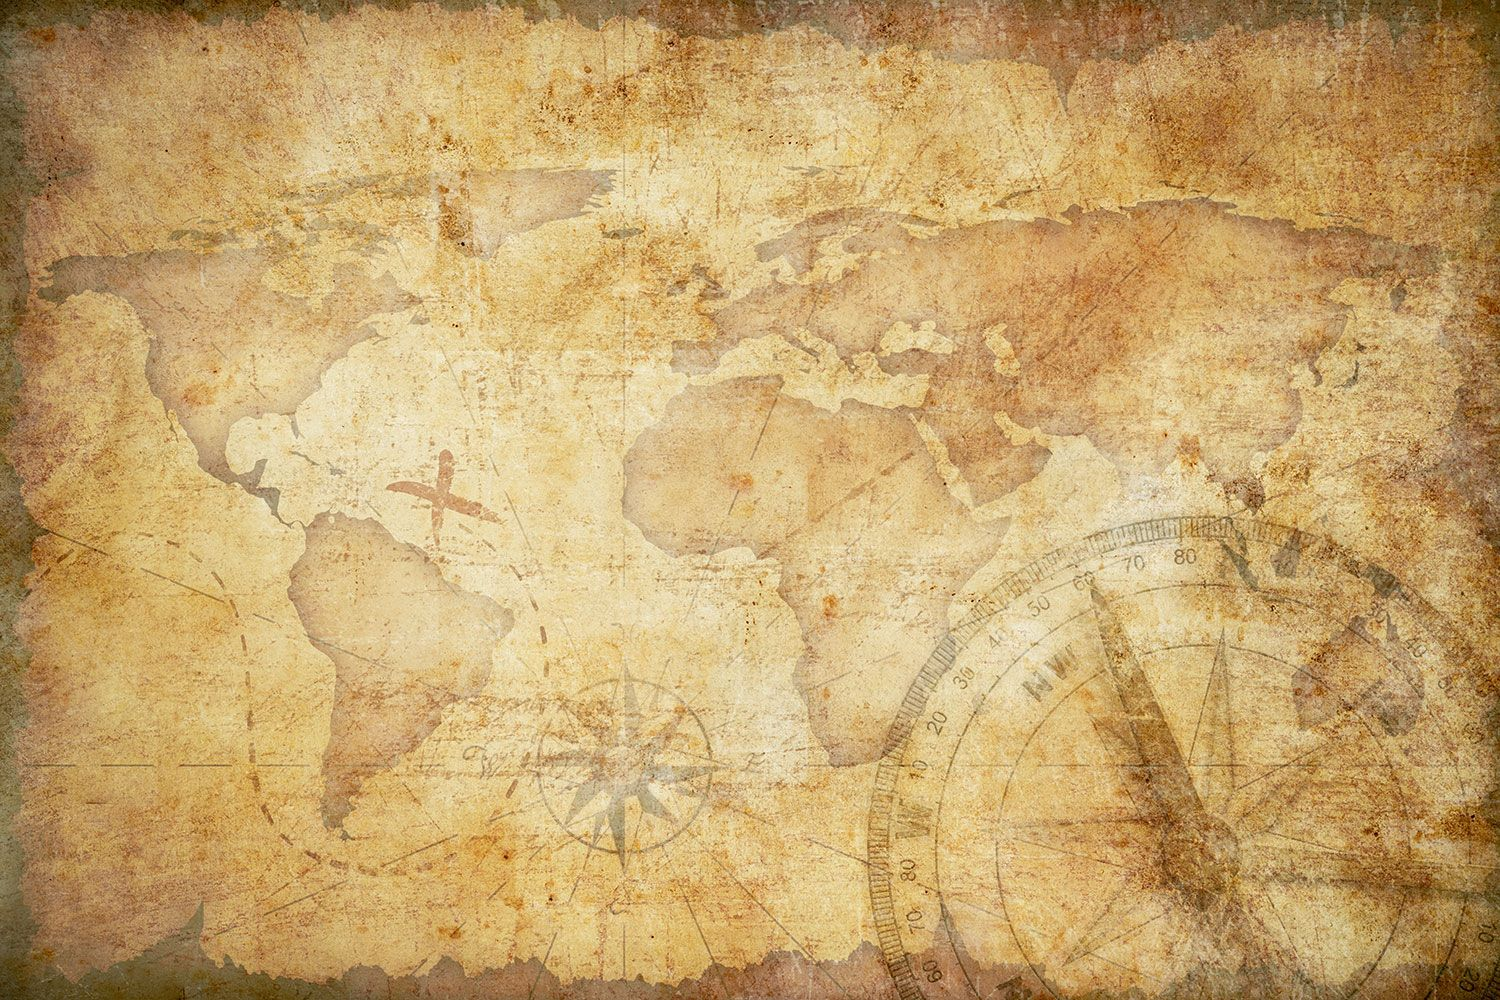 Faded World Map Wallpaper | Wall Decor | PAGE LAYOUTS | Pinterest ...